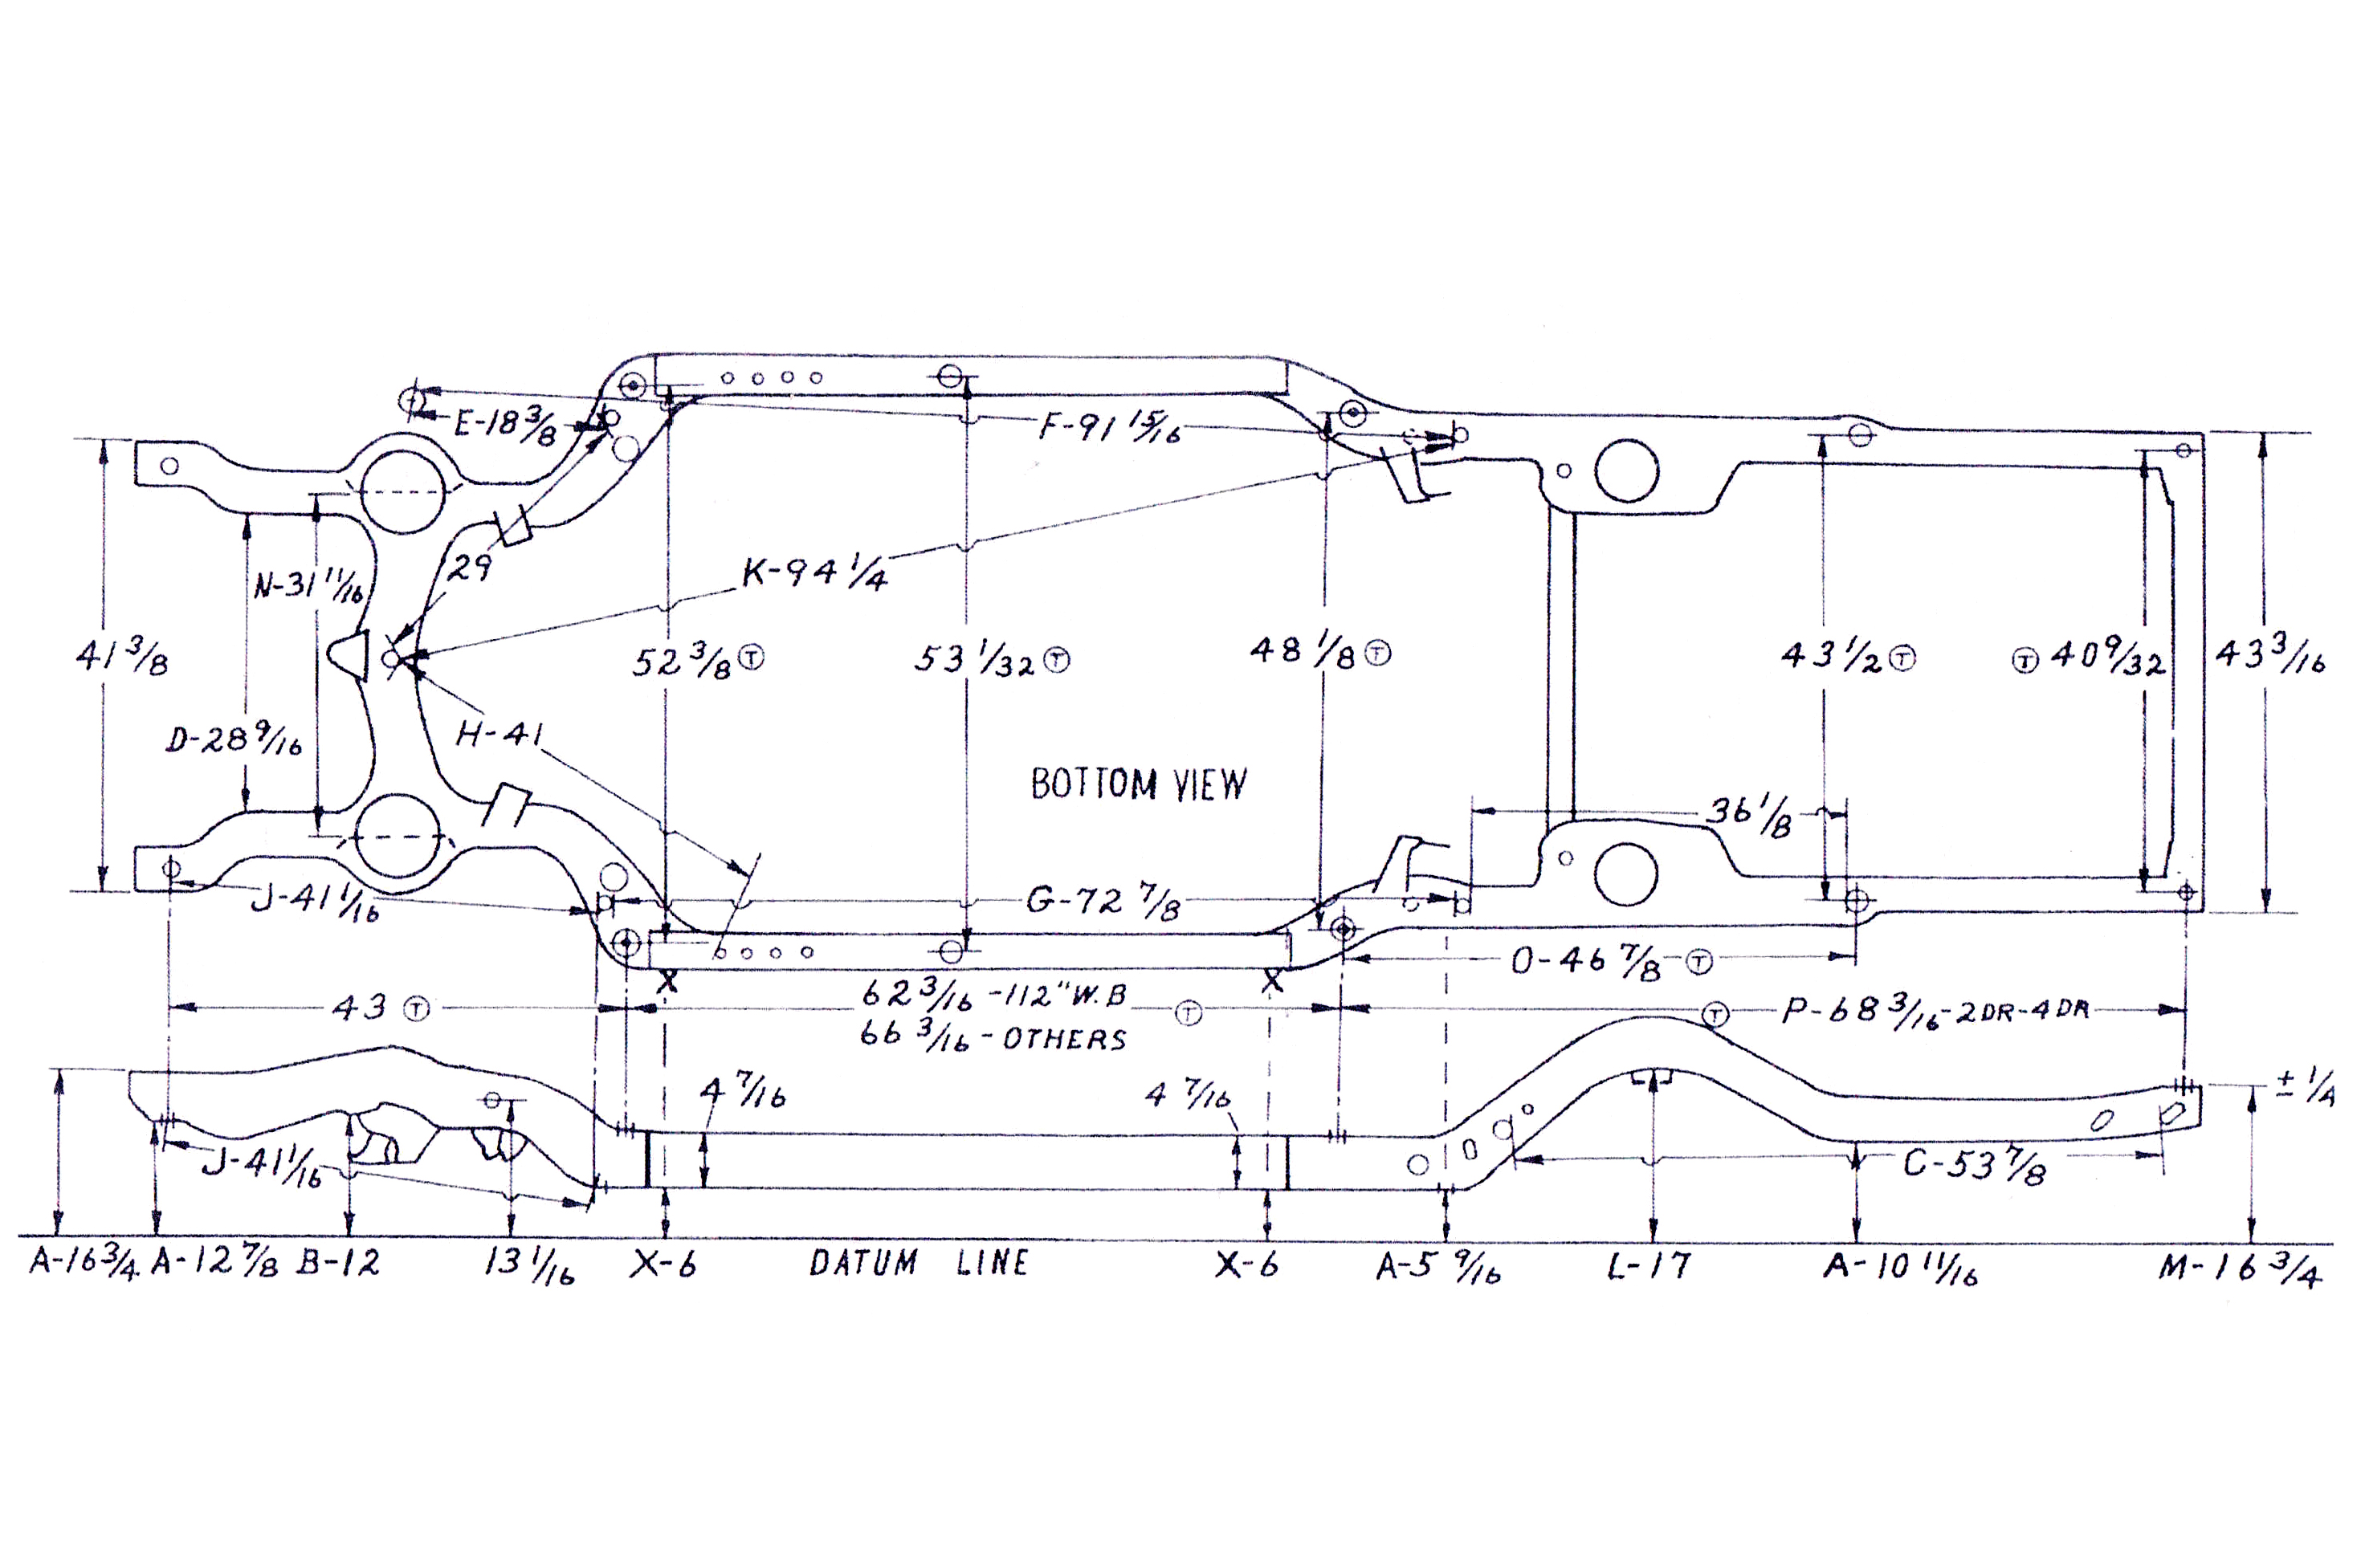 1960 Pontiac Frame Diagram Trusted Wiring How To Powder Coat A Hot Rod Network